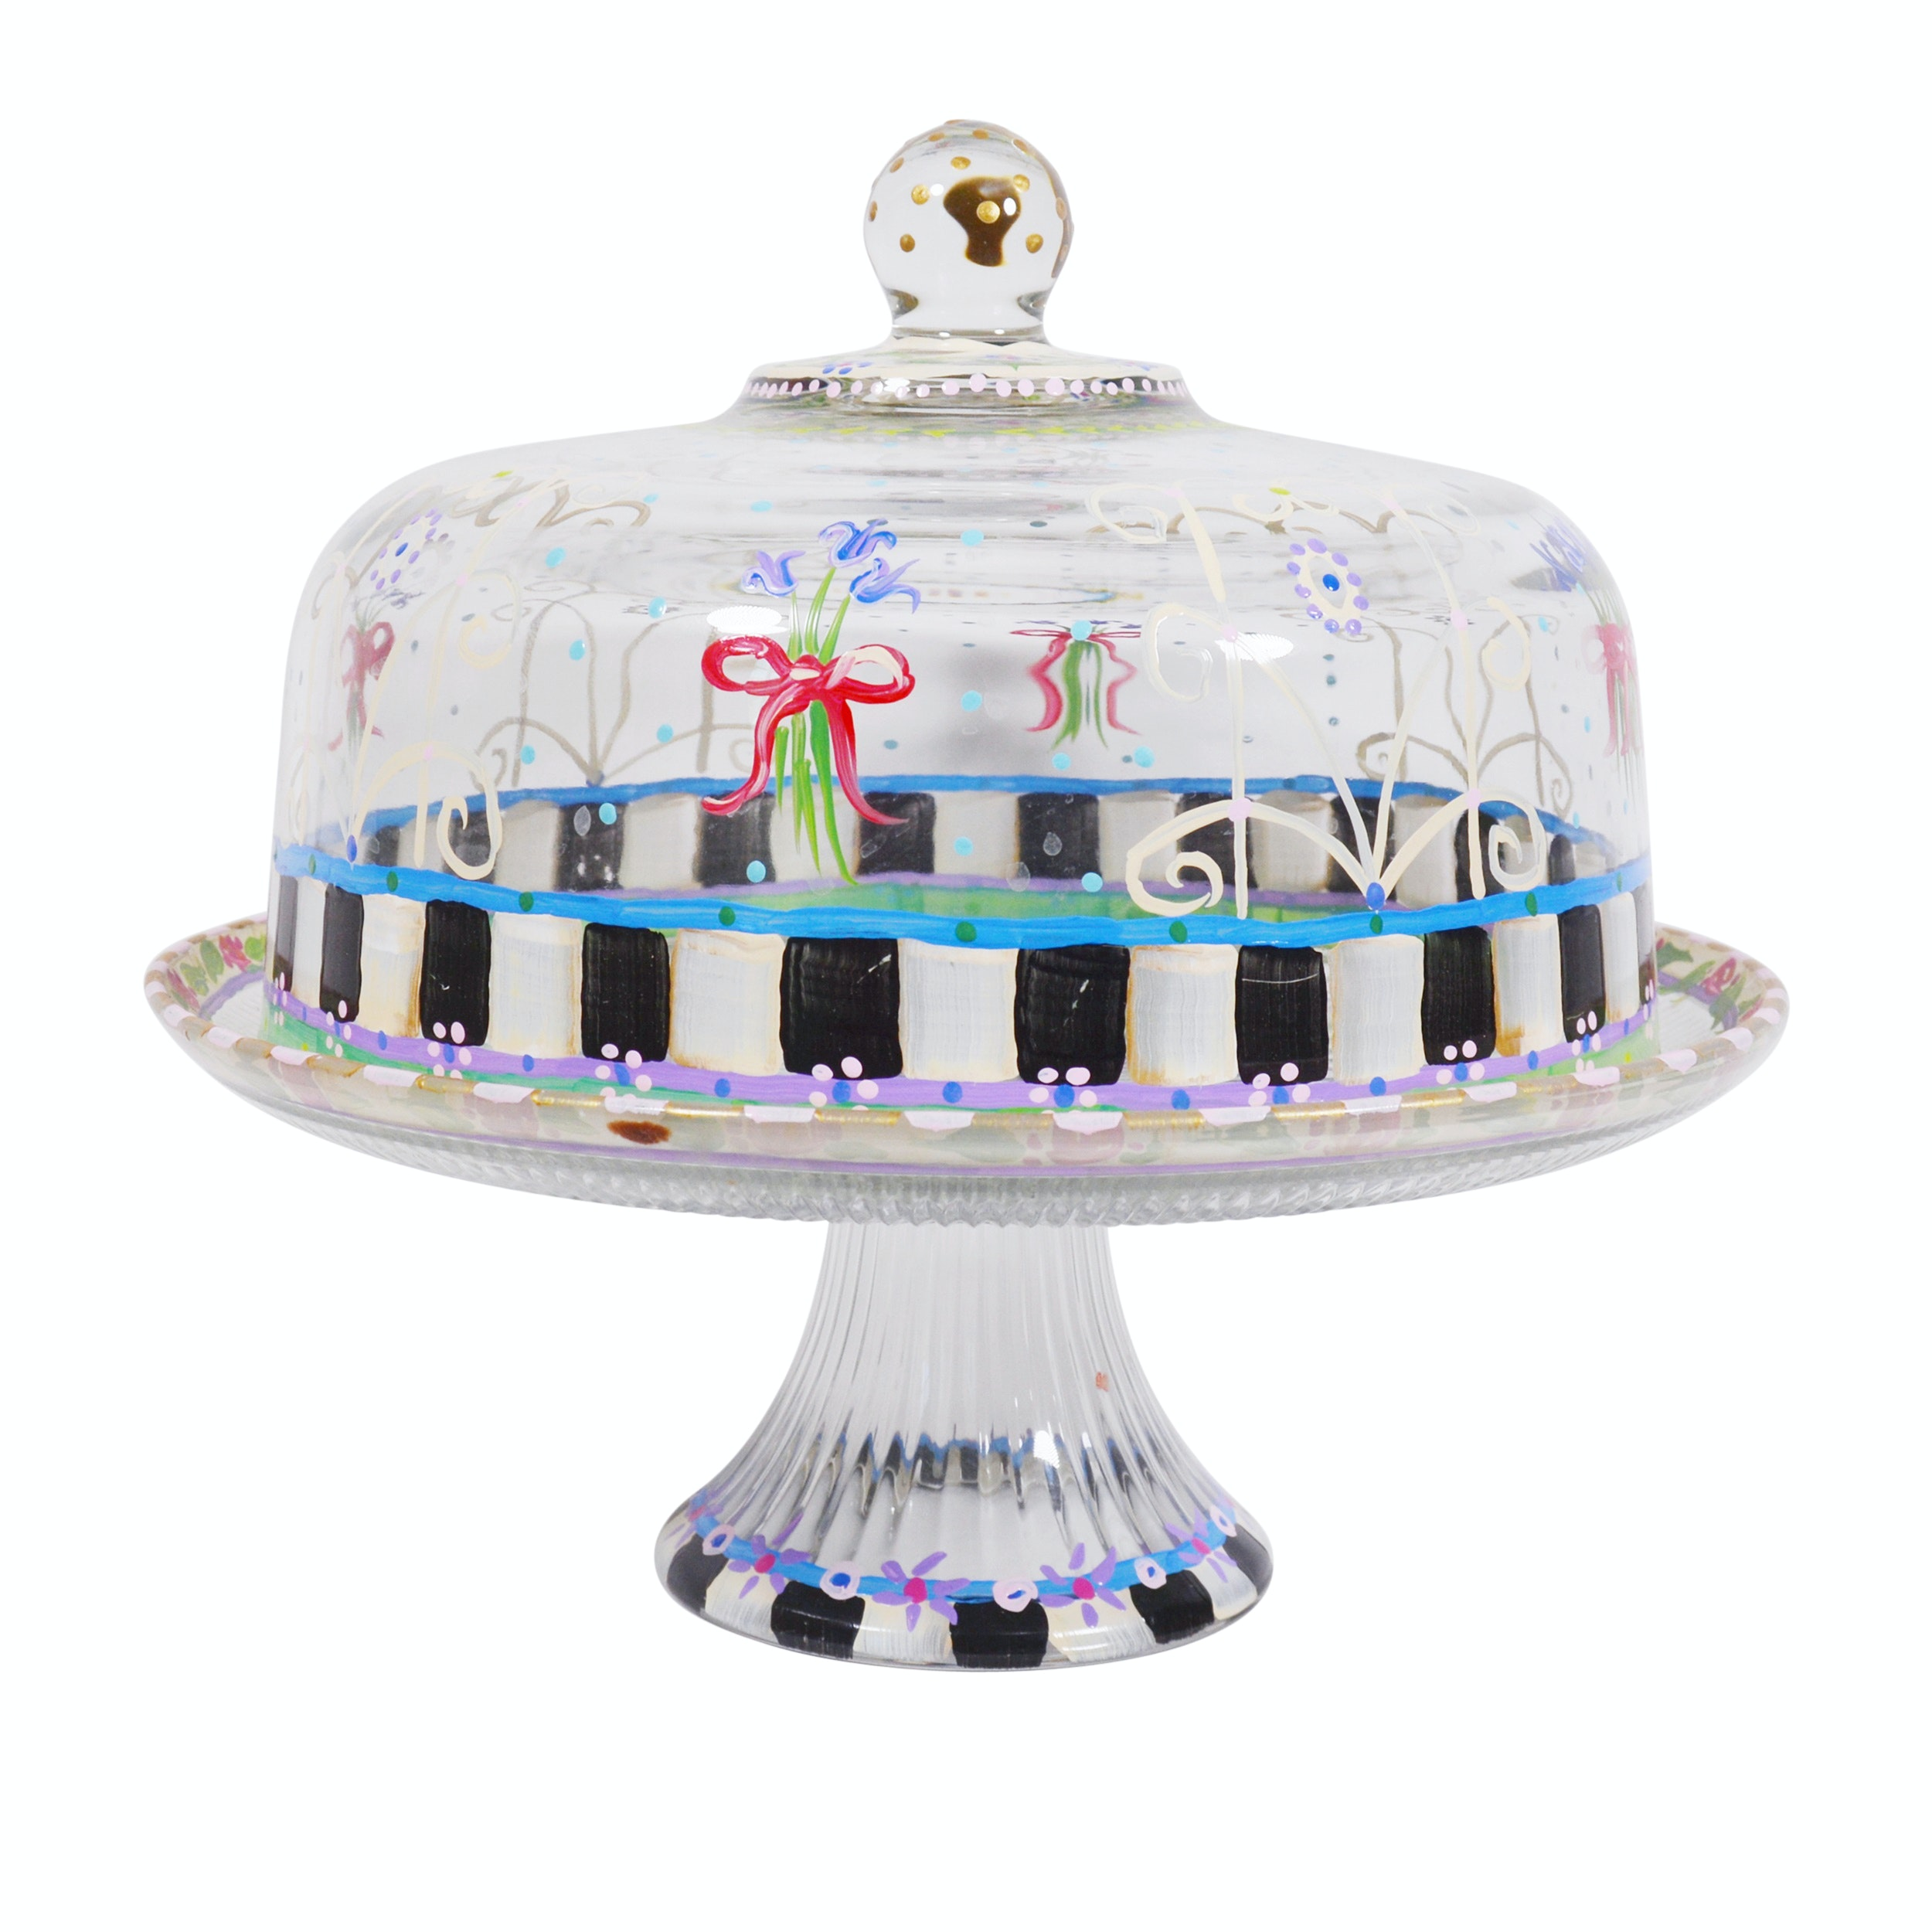 Hand Painted Glass Cake Plate and Dome ...  sc 1 st  EBTH.com & Hand Painted Glass Cake Plate and Dome : EBTH